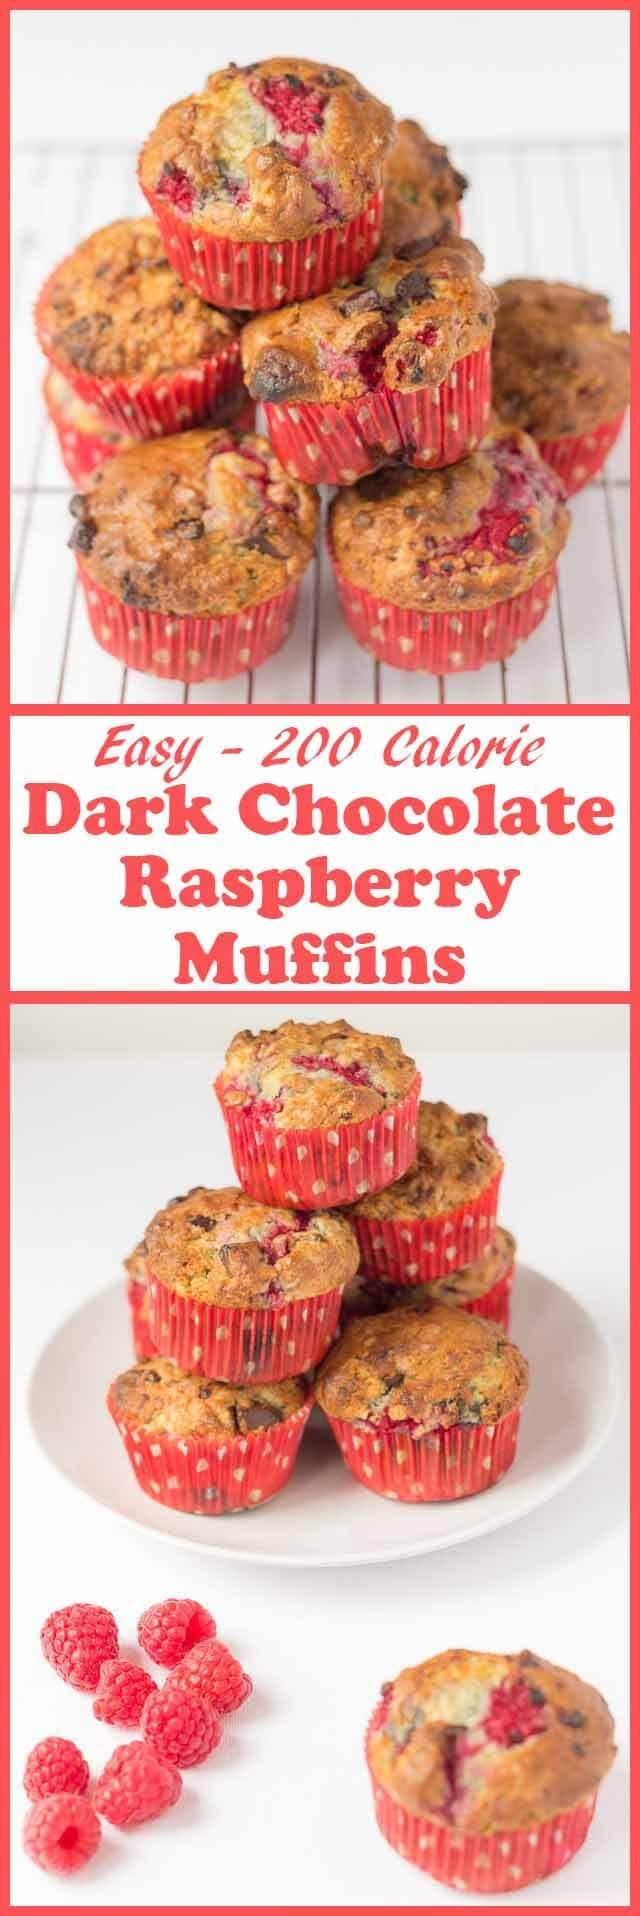 Dark chocolate raspberry muffins made with delicious fresh raspberries, teasing little pieces of dark chocolate and a sensational moist centre for only 200 calories each!